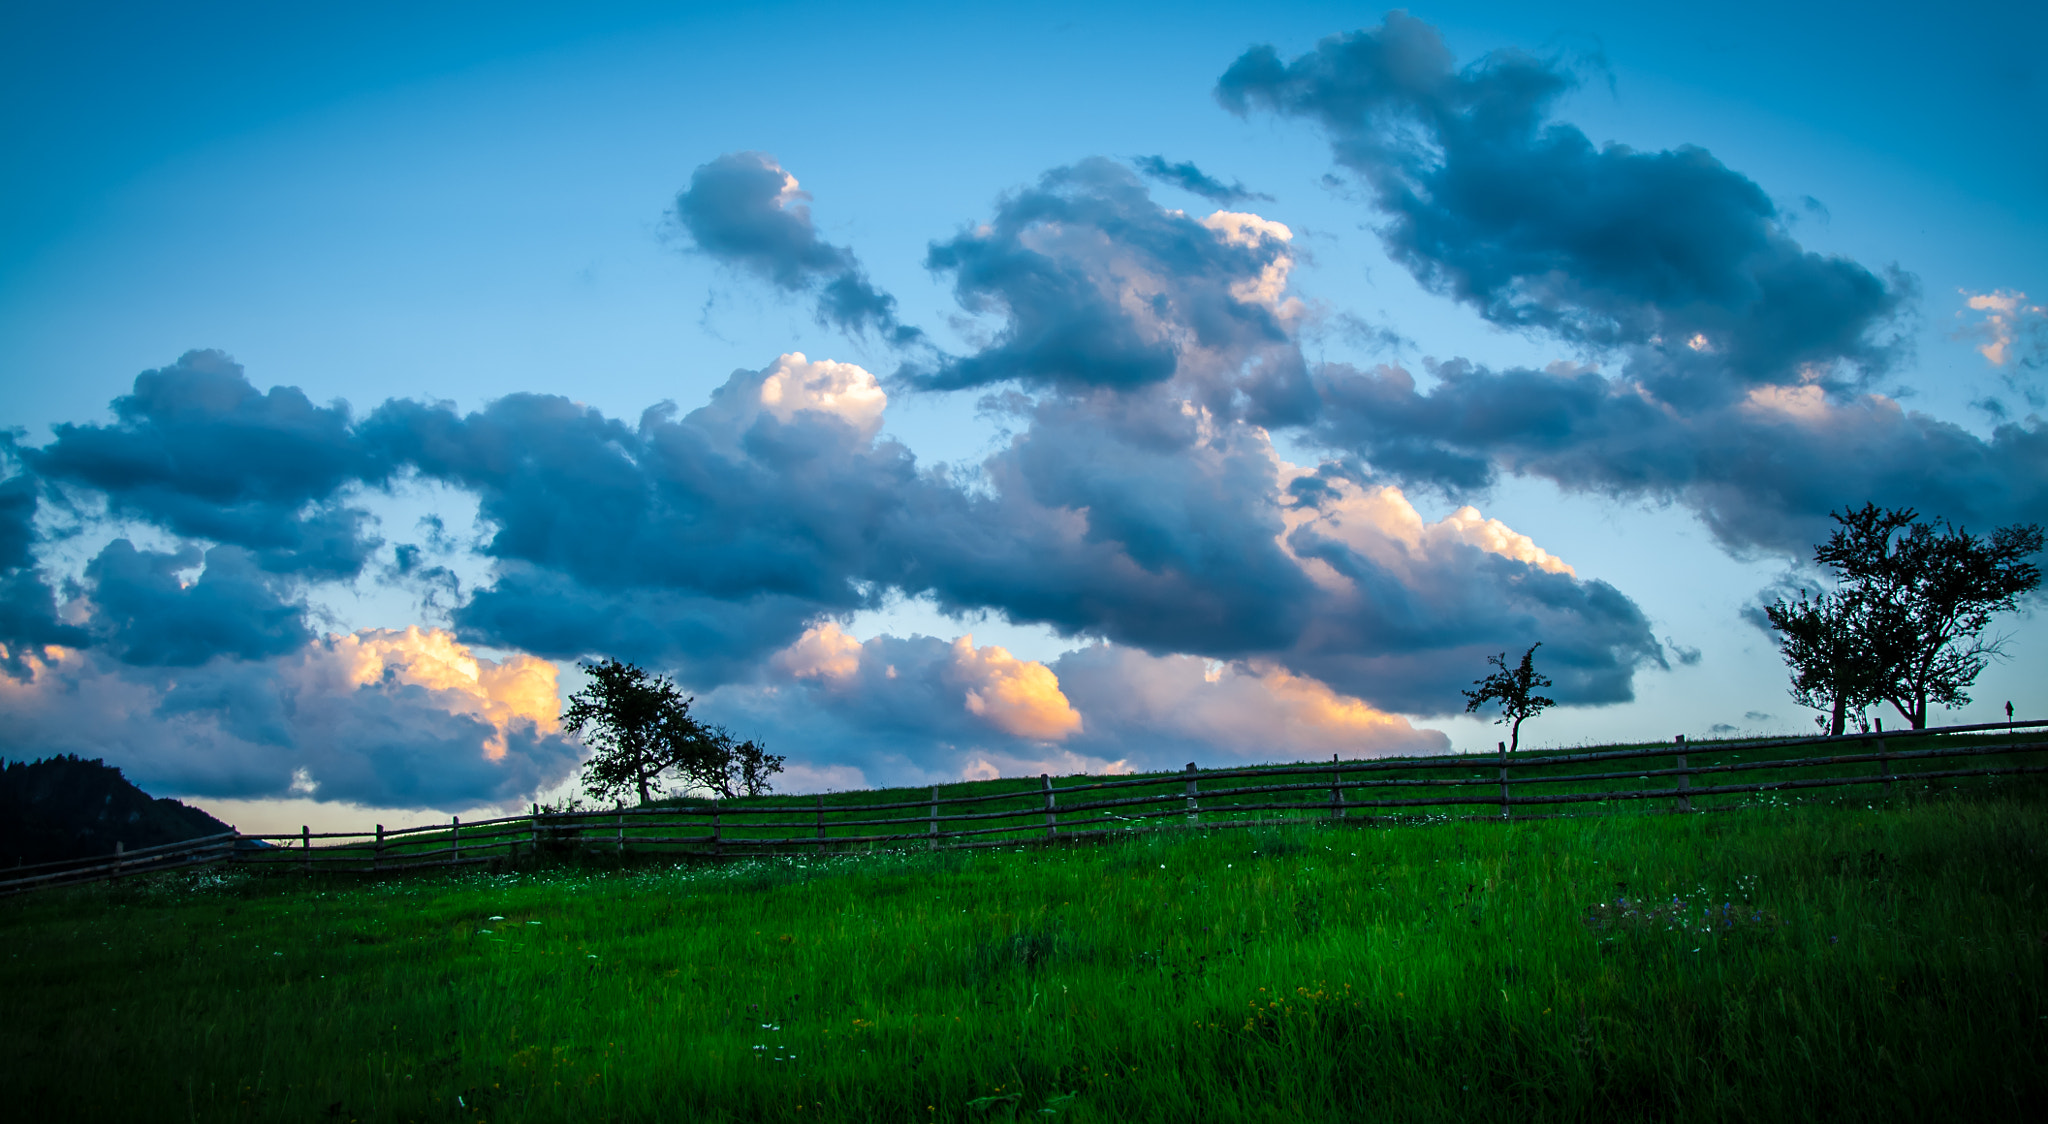 Photograph Grass & clouds by Andi Cretu on 500px